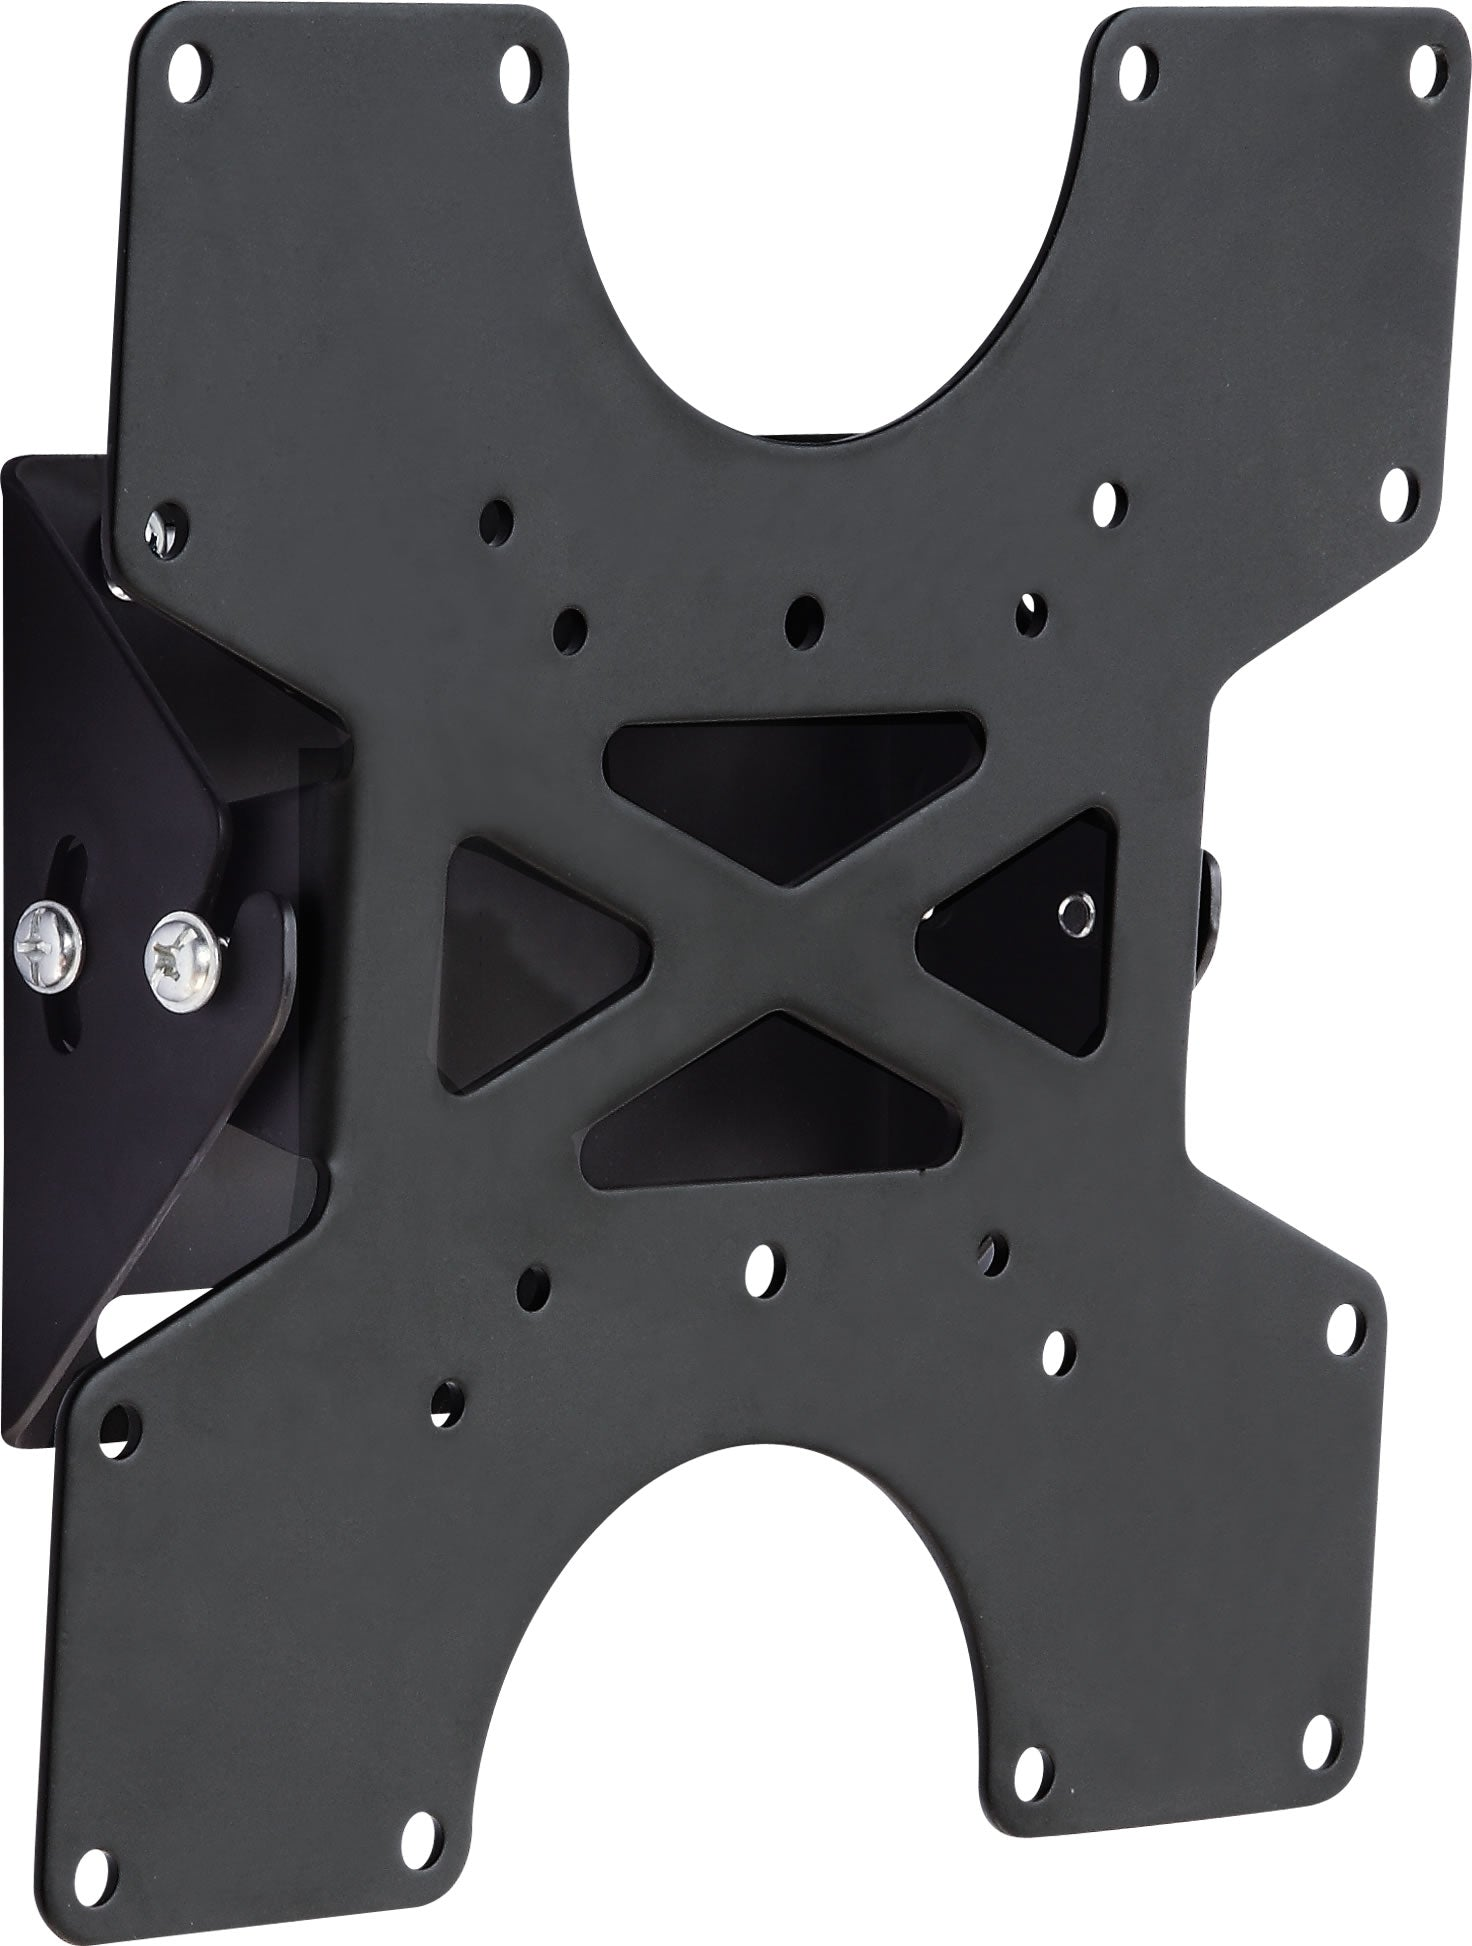 64-0113 Monitor Screen / TV Wall Mount Tilt Bracket for 13-37 inch